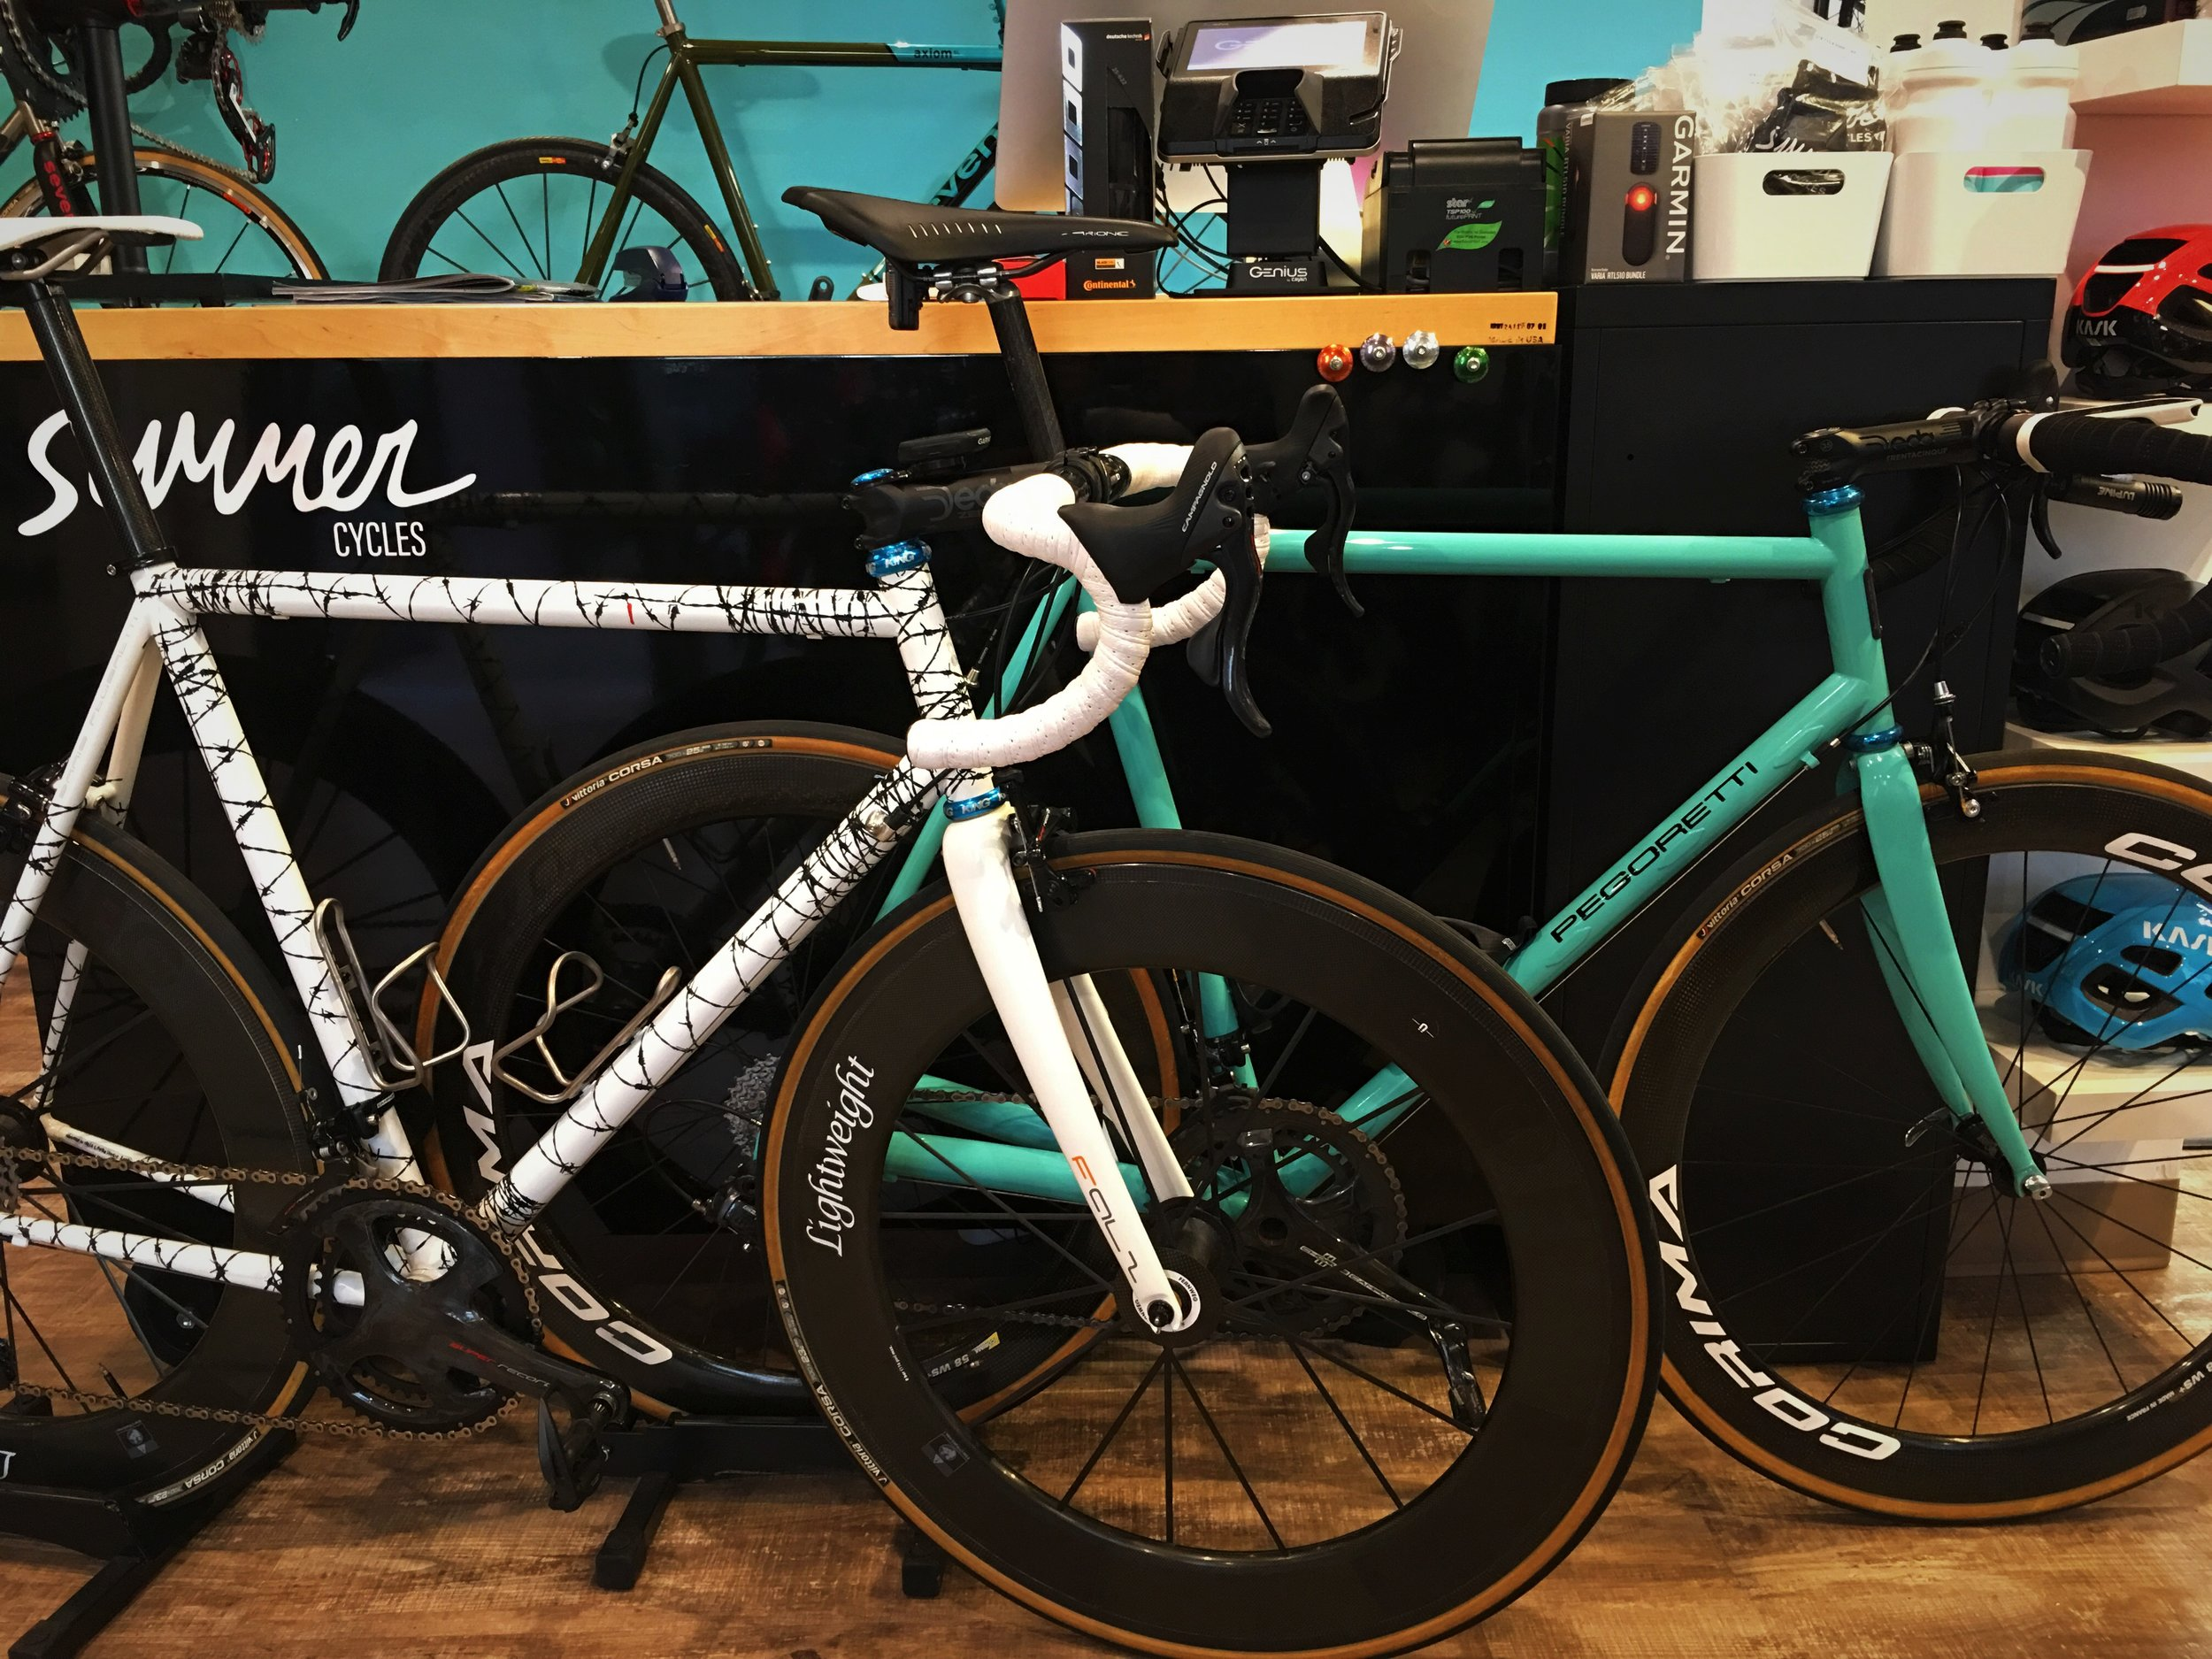 We have a few Pegoretti's at Summer Cycles for you to demo, including the Big Leg Emma, shown here in turquoise and a Duende with the Guantanamo paint scheme.